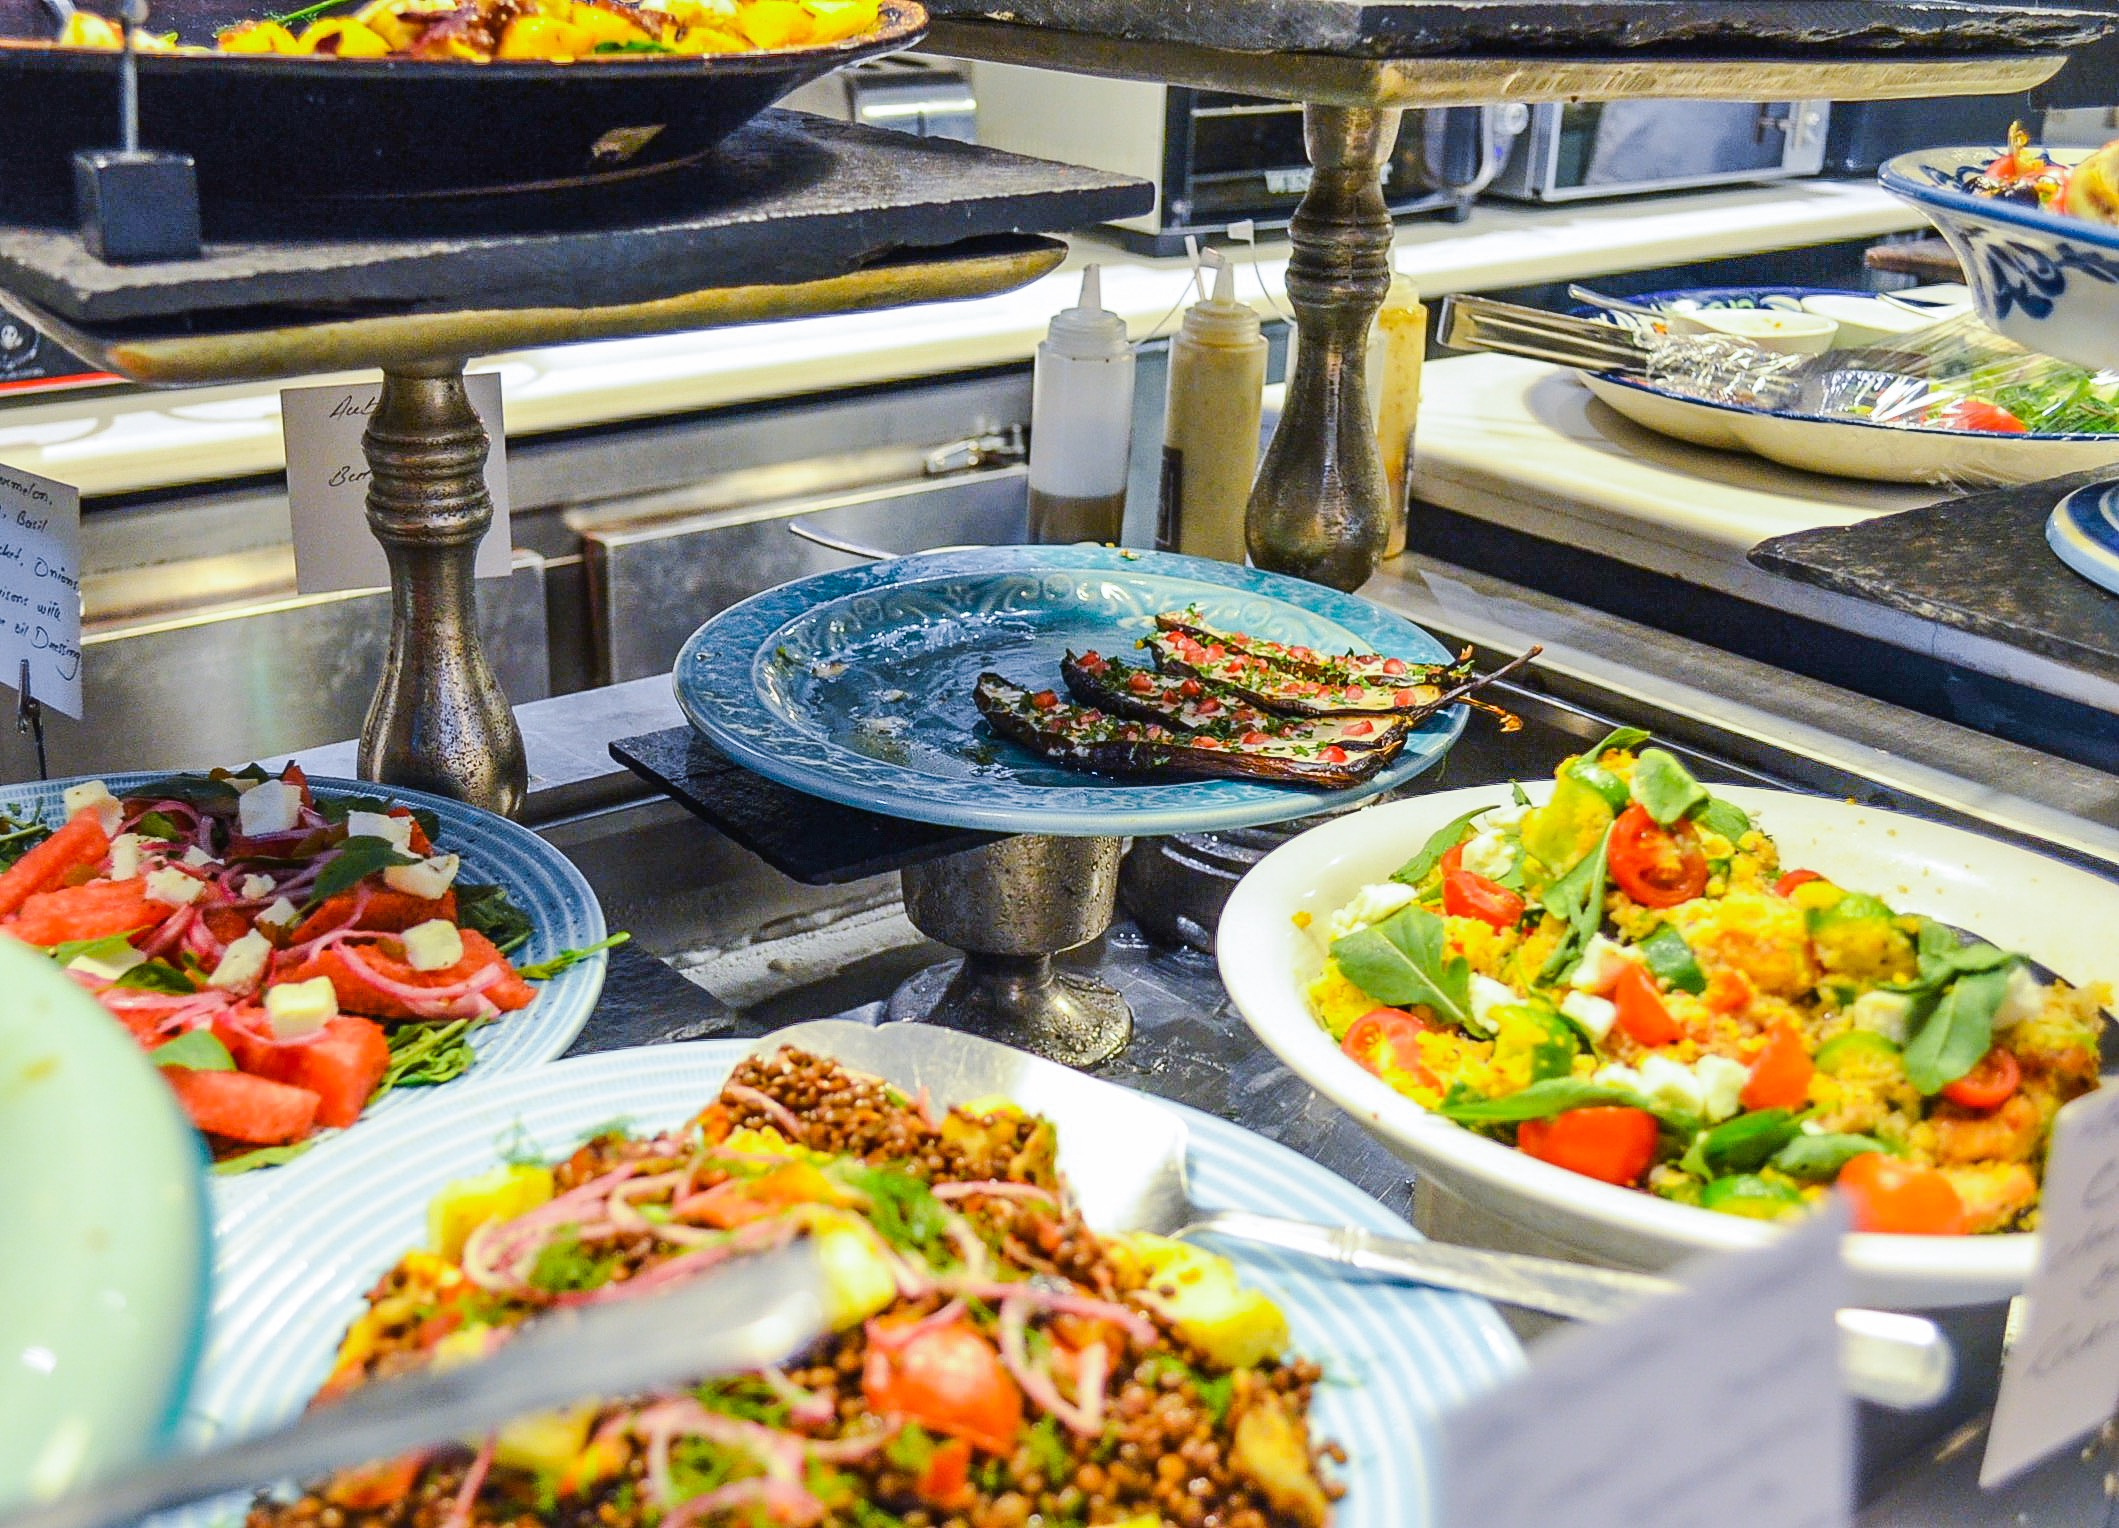 Luscious Salad Counter at The Pantry (Mall One)